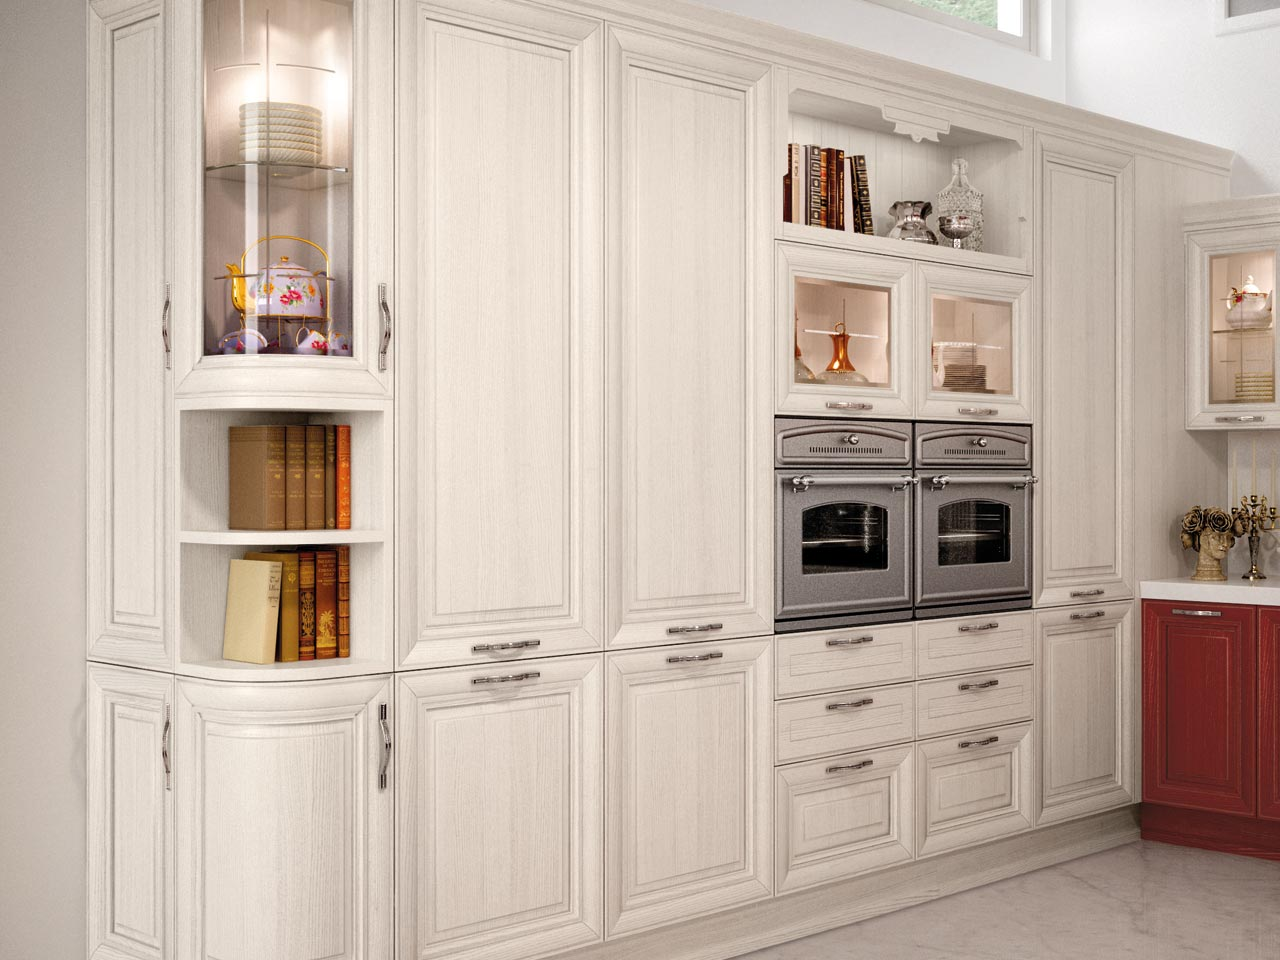 decap kitchen with handles pantheon collection by cucine lube. Black Bedroom Furniture Sets. Home Design Ideas